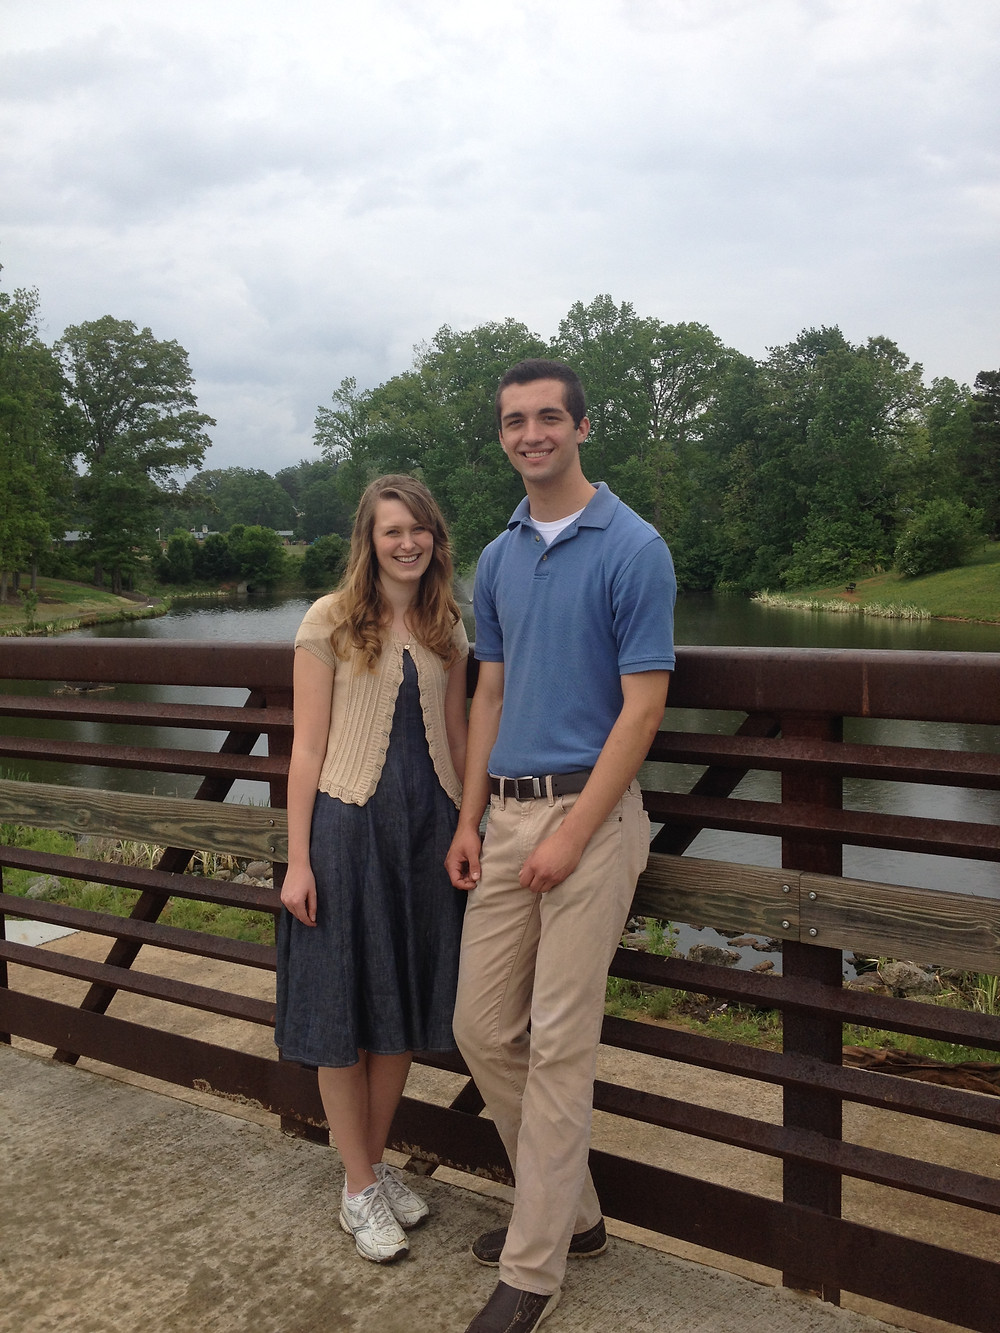 A young couple are standing on a bridge with a lake in the background